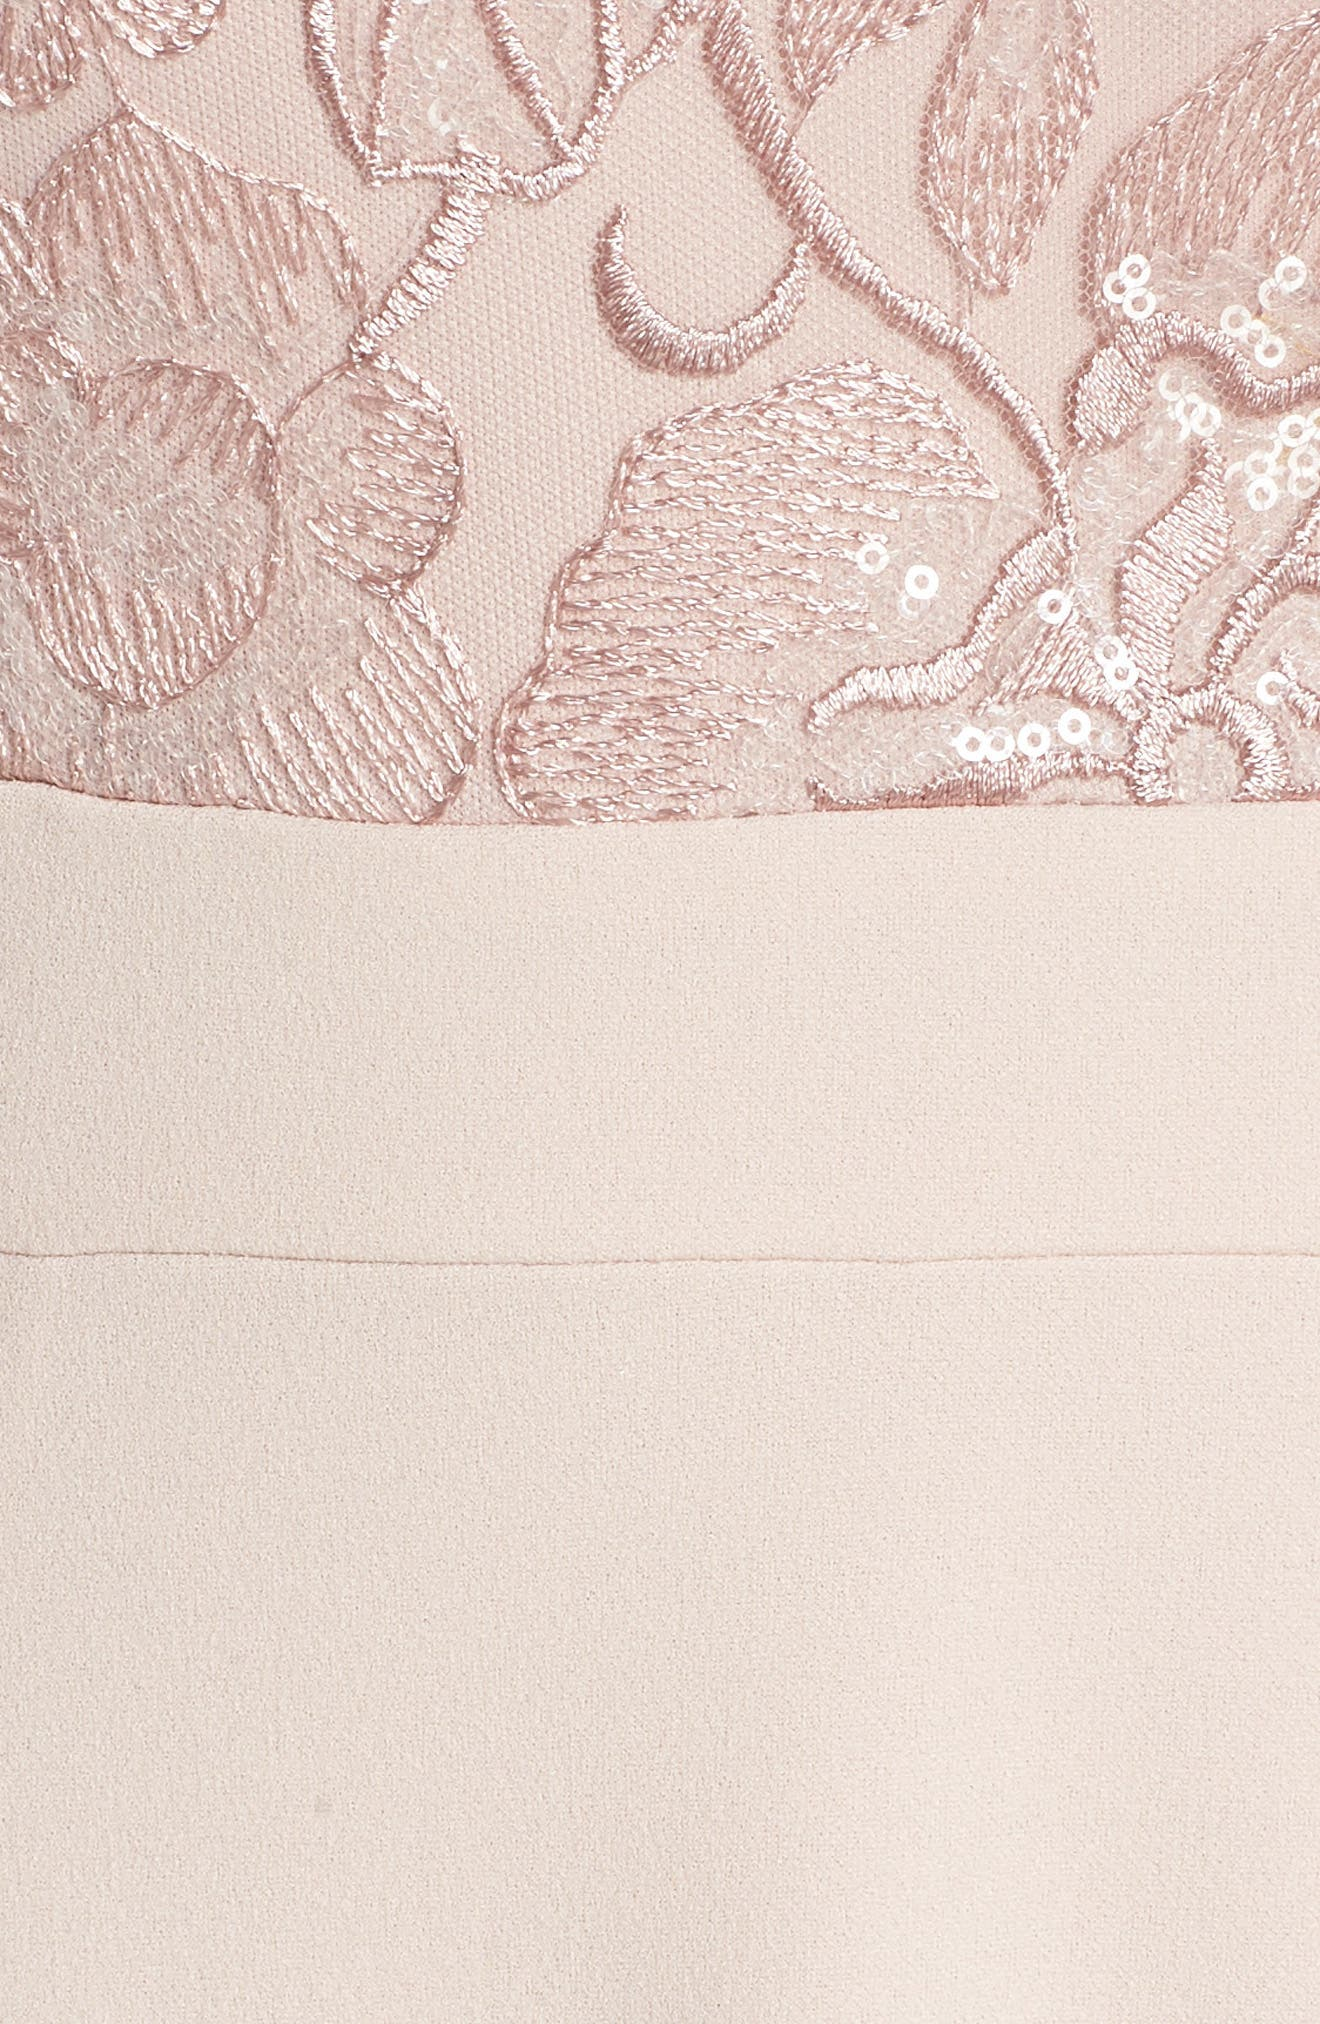 Embroidered Bodice Mermaid Gown,                             Alternate thumbnail 5, color,                             Blush